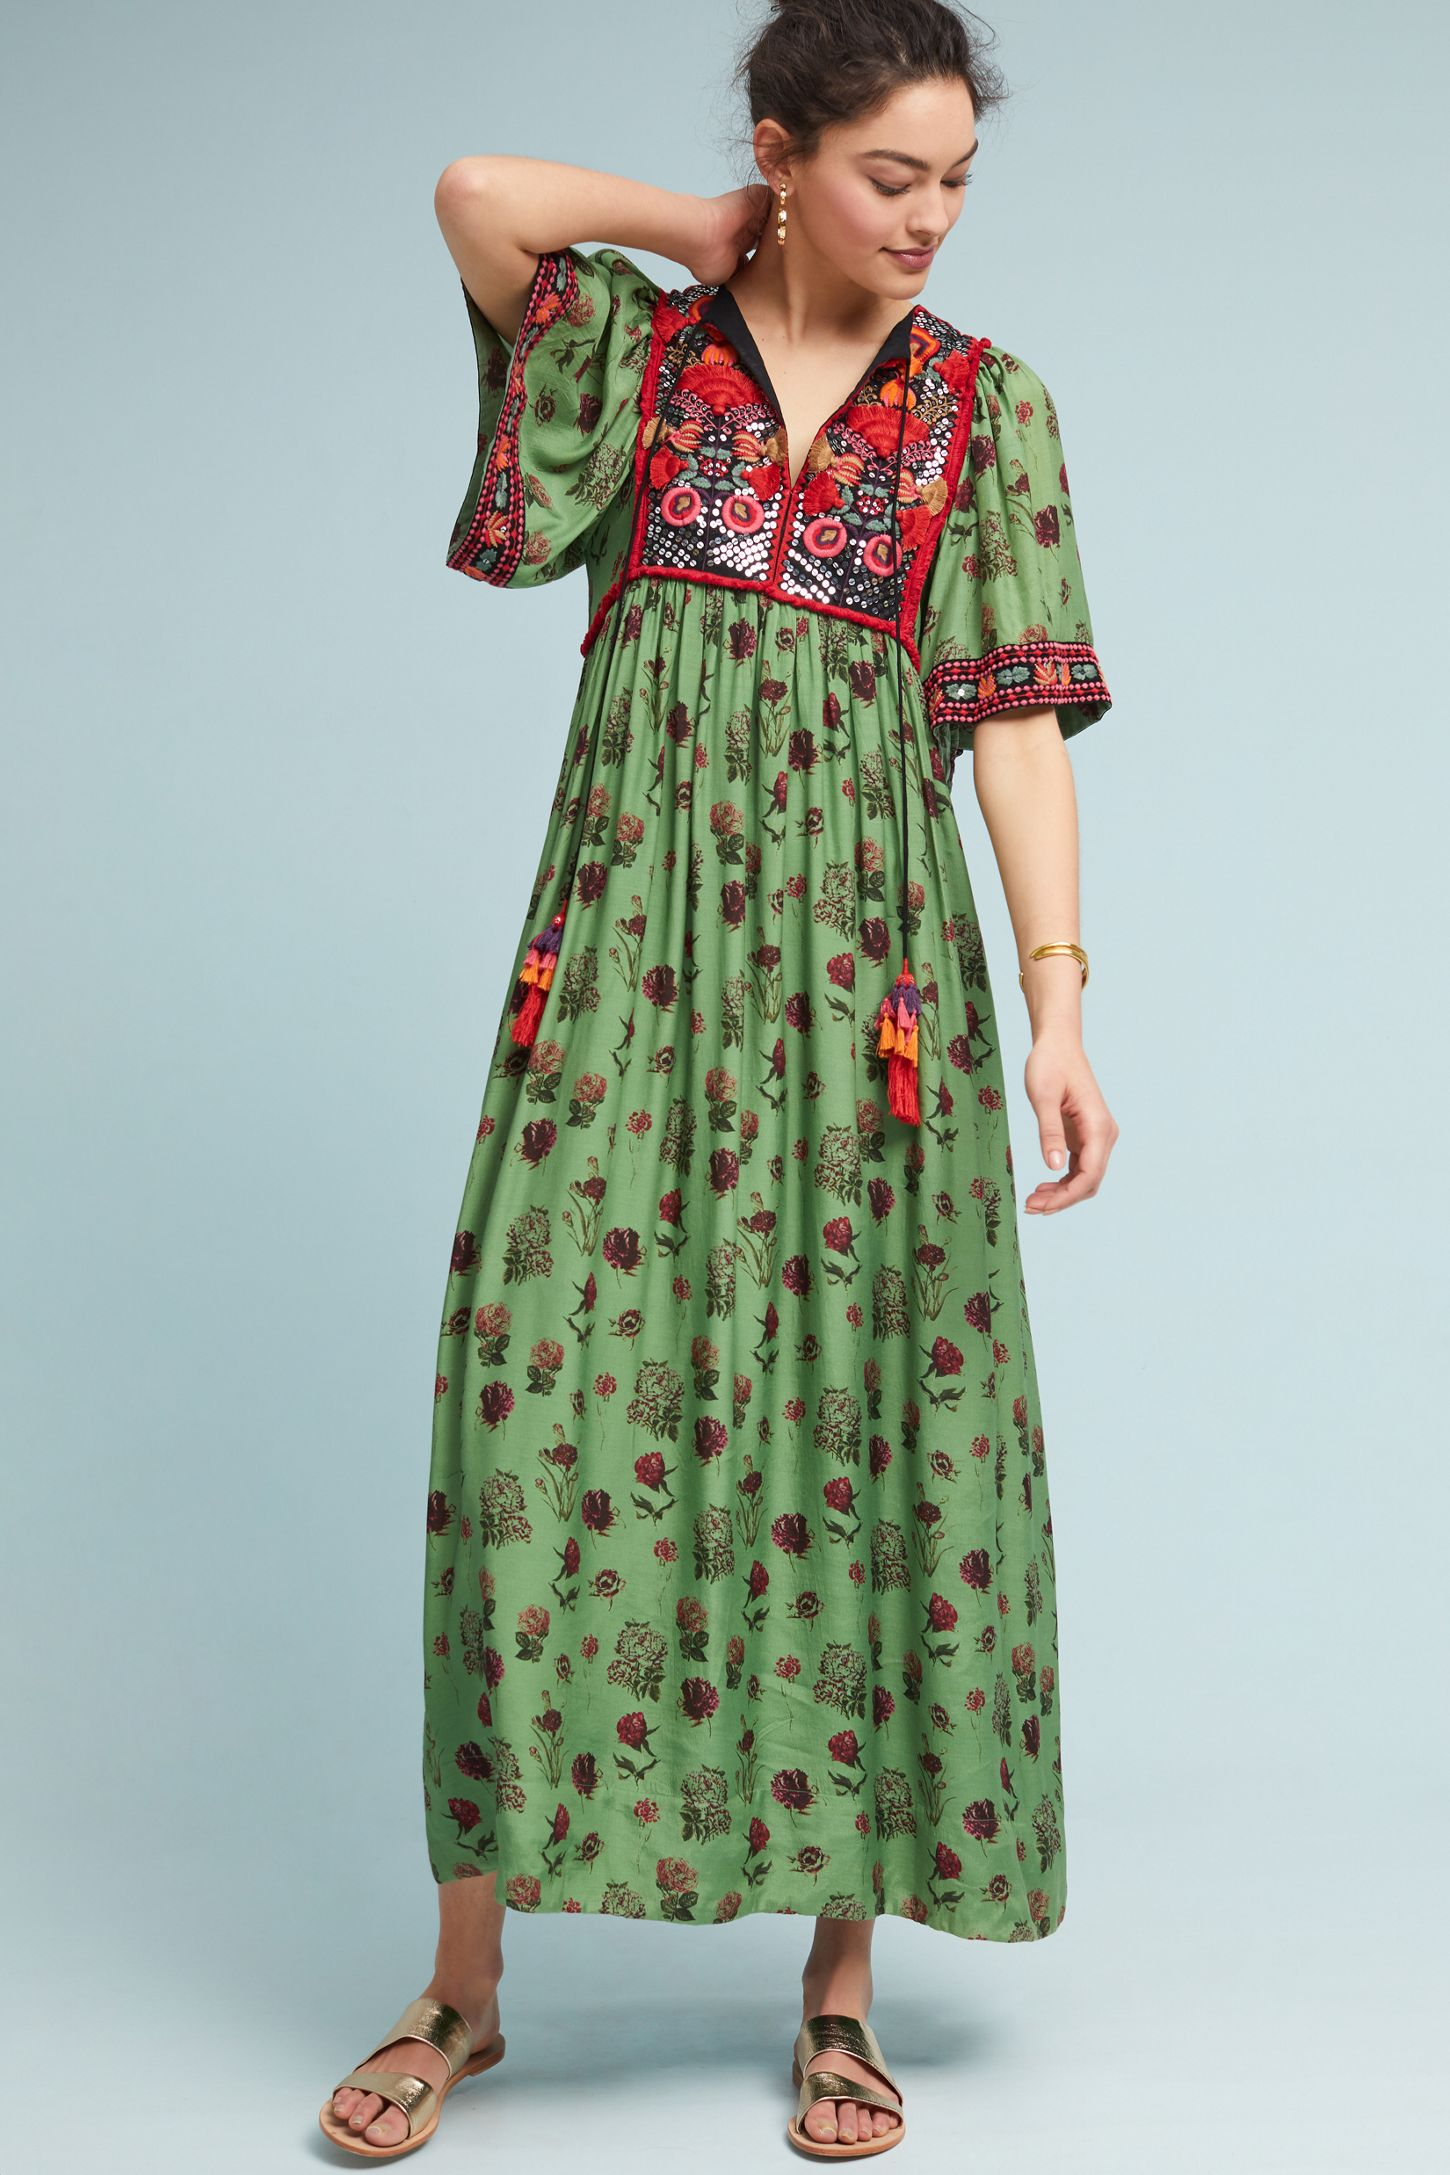 a49128f7ce1 Basil Embroidered Dress